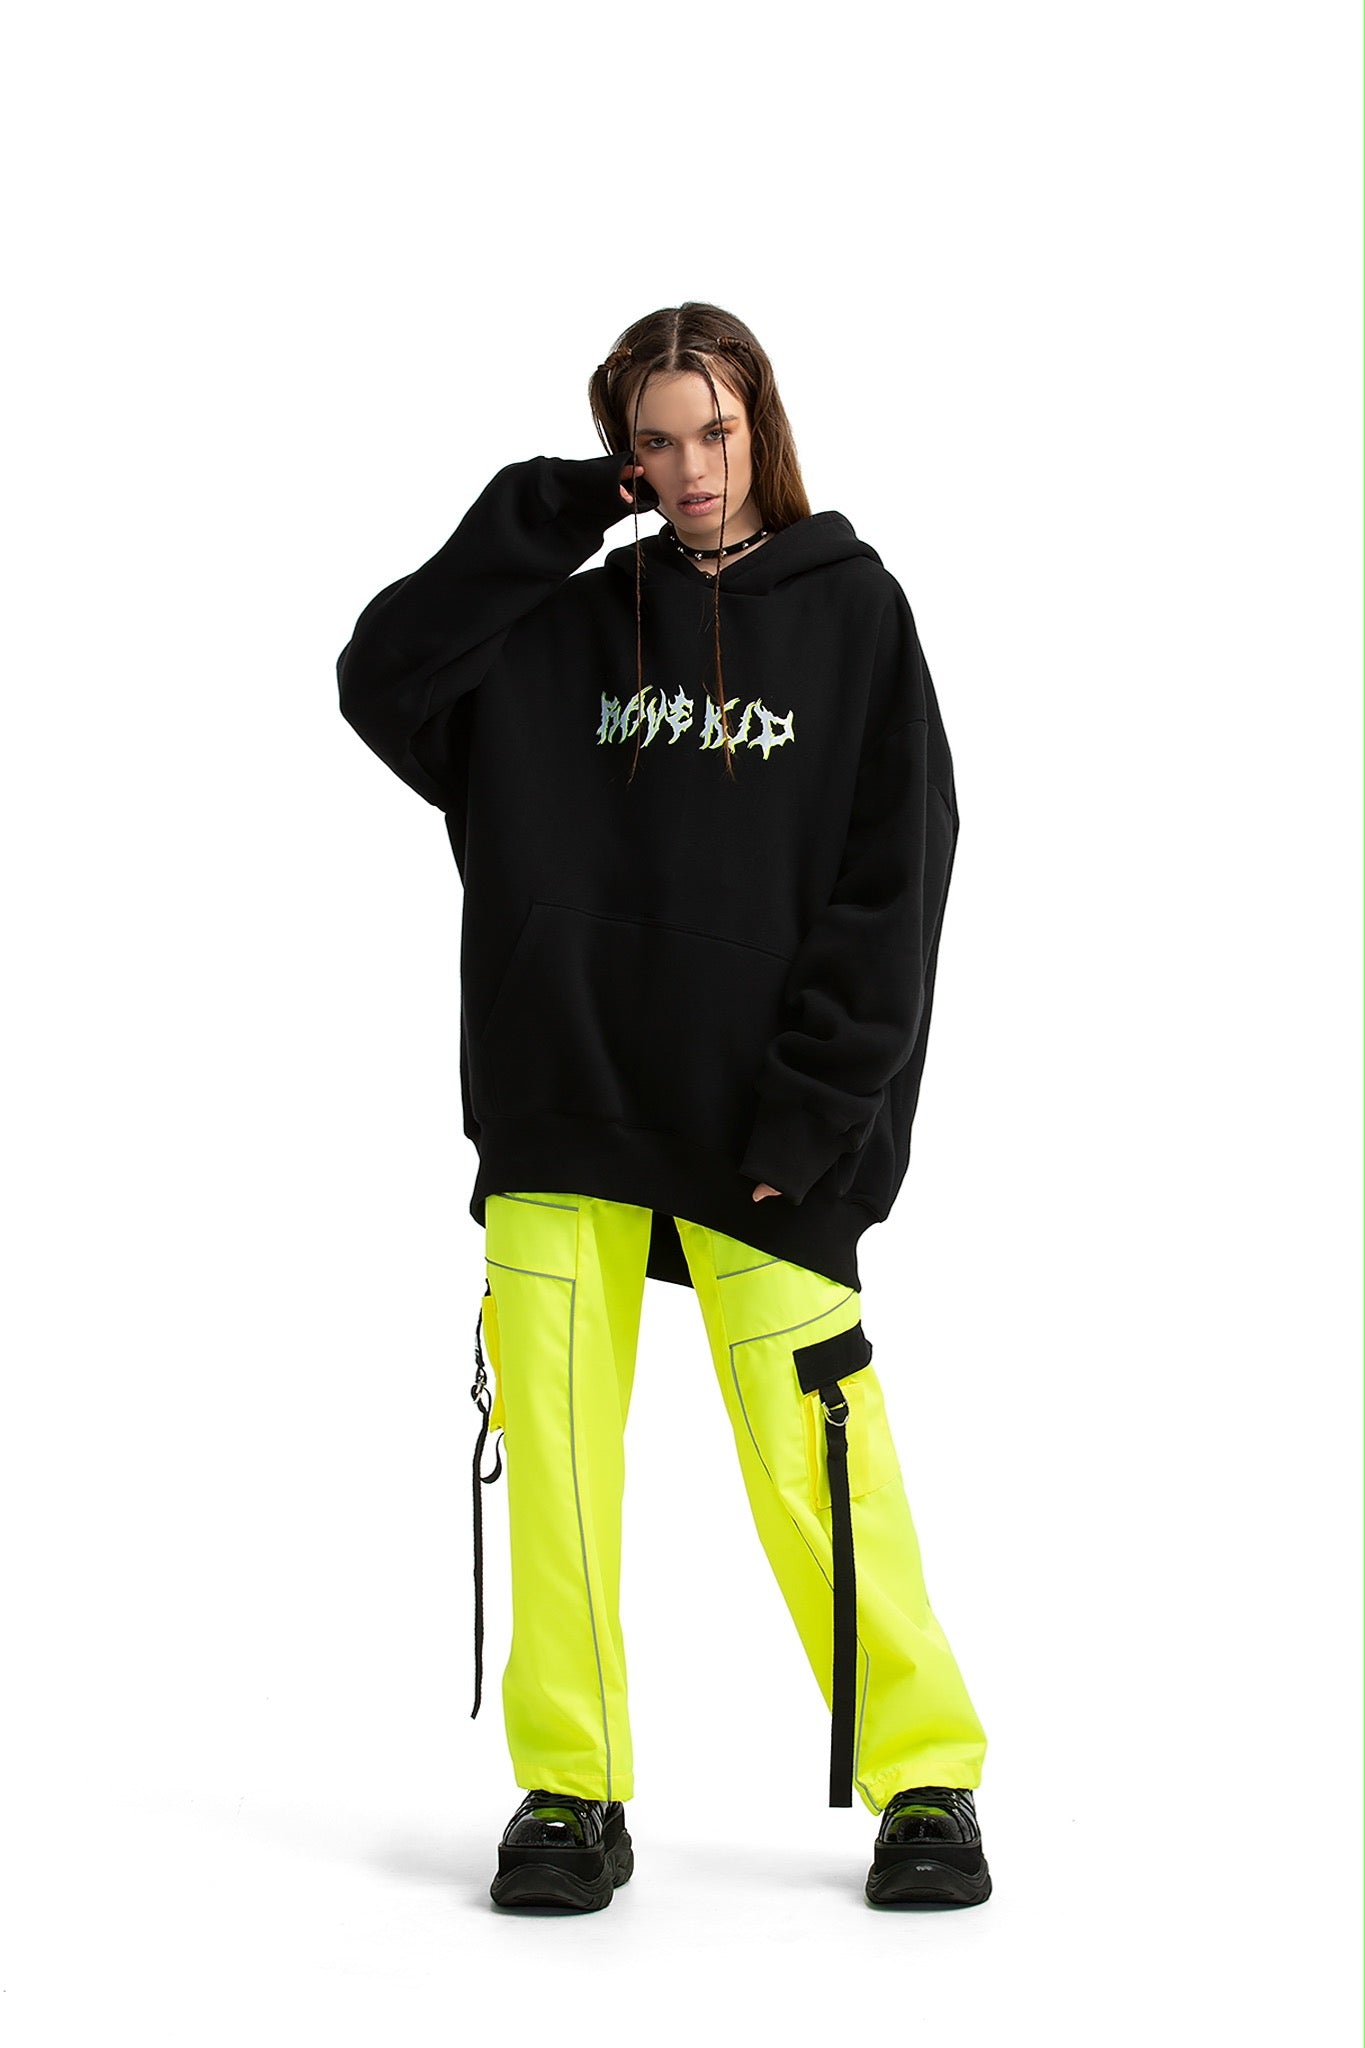 Rave Kid Super oversized hoodie [Black]